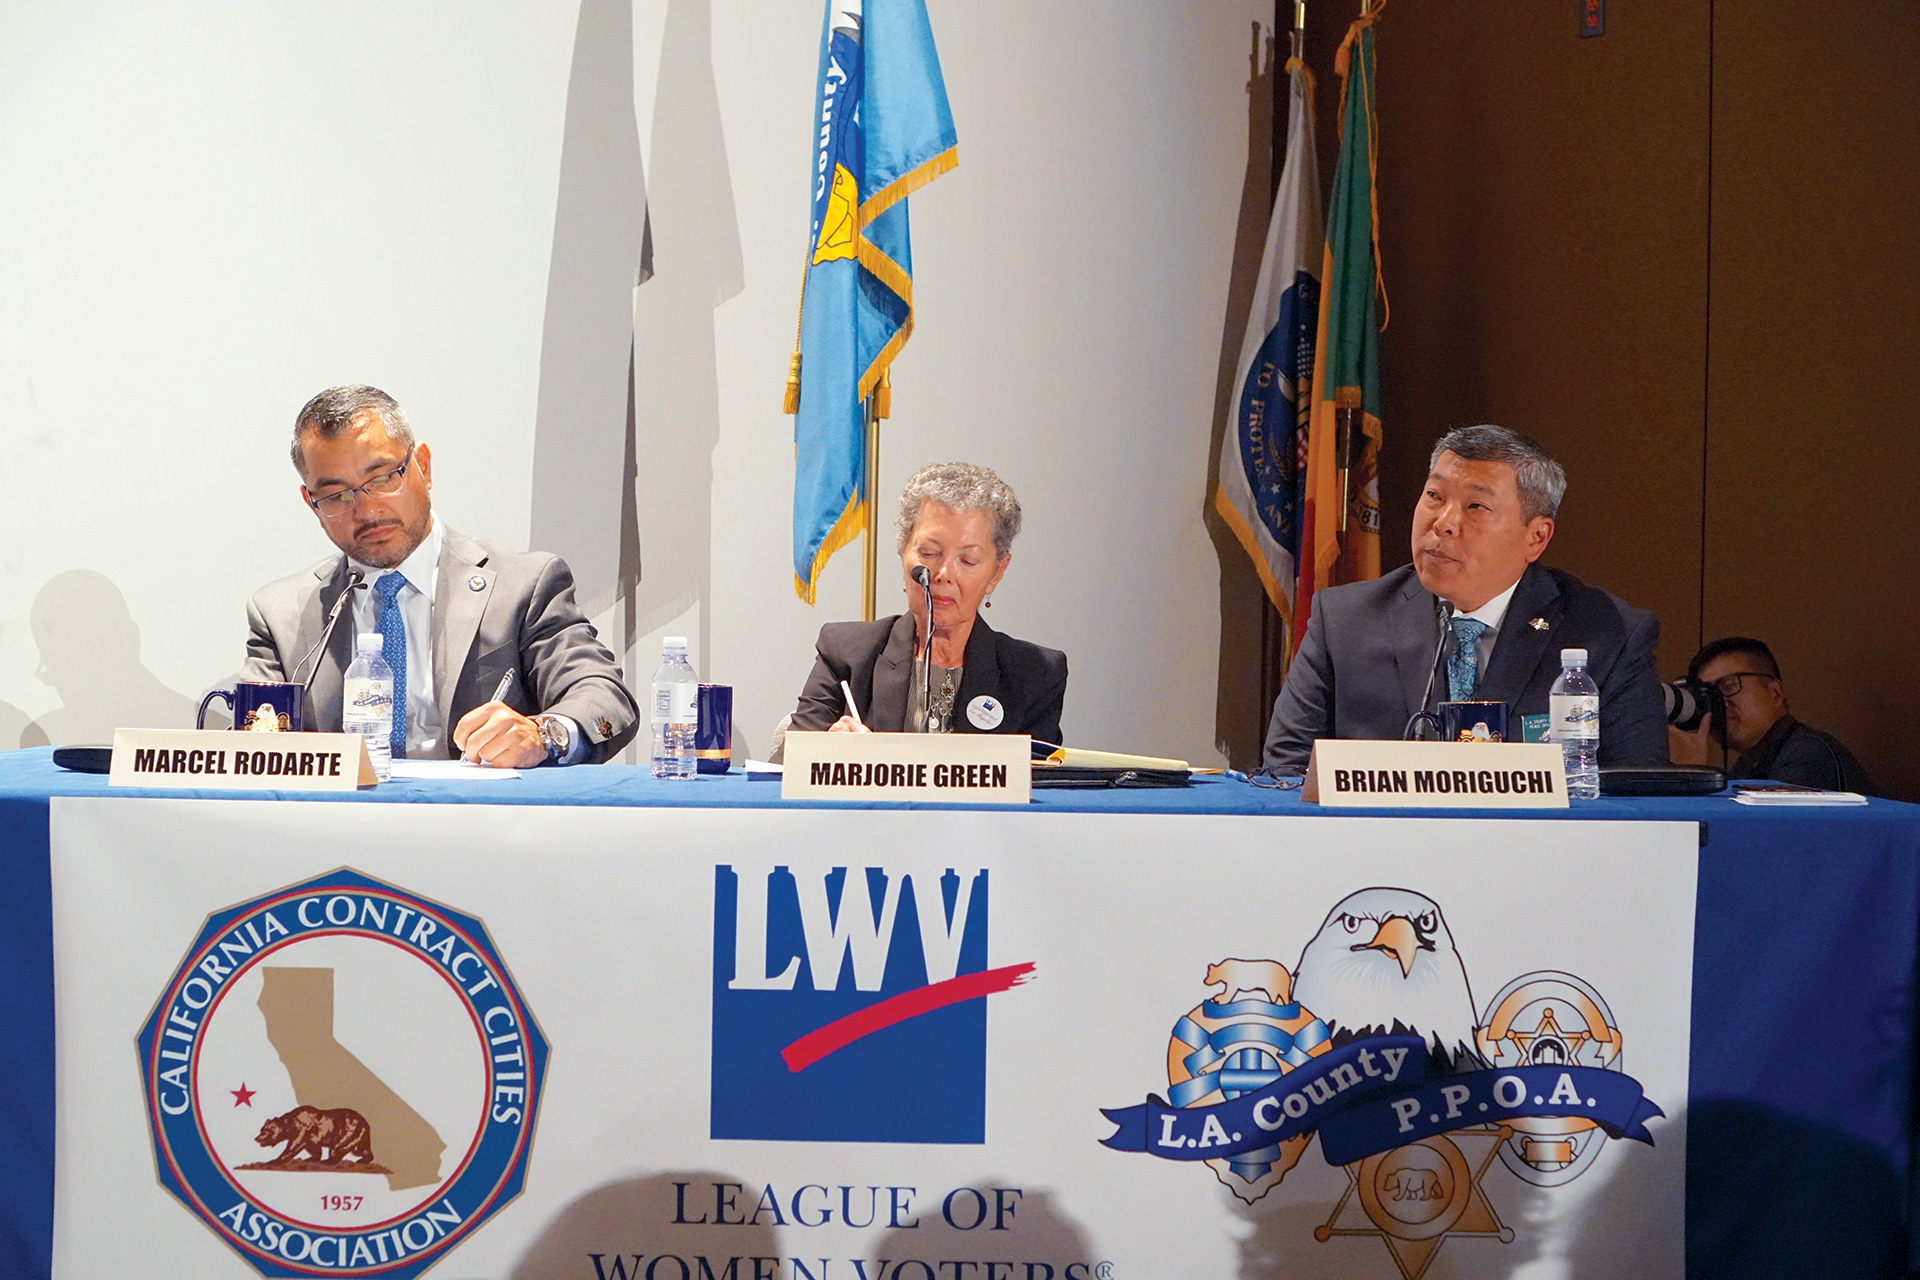 l-a-county-sheriff-debate-hosted-by-ppoa-1